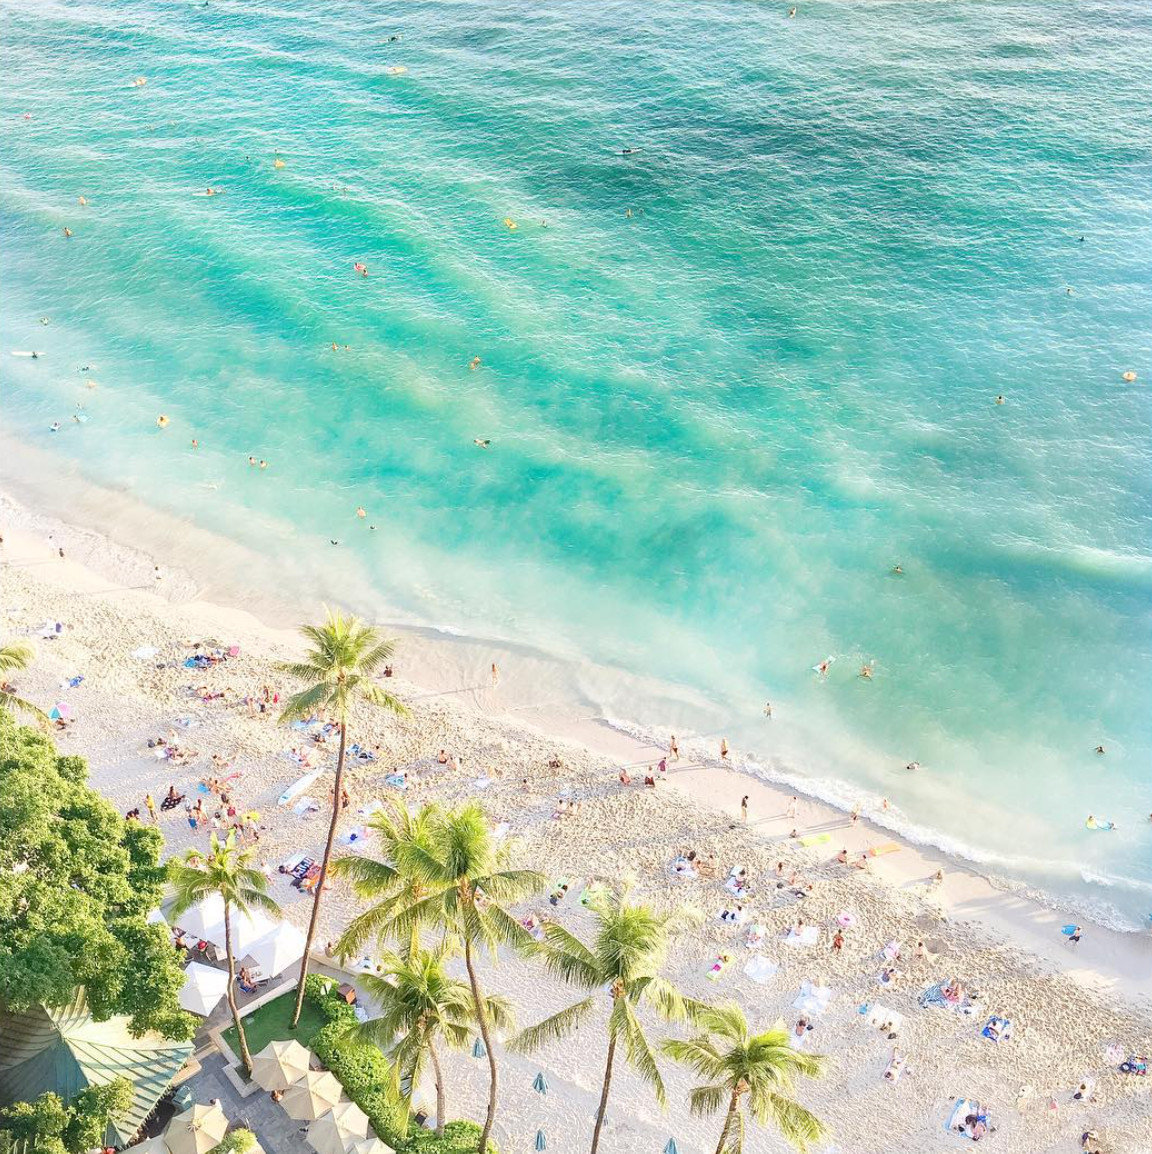 Influencers + Tastemakers Travel Shop Trip Ideas shore Sea outdoor Beach body of water Coast Ocean Nature horizon wind wave wave sand bay caribbean sunlight cape tropics material